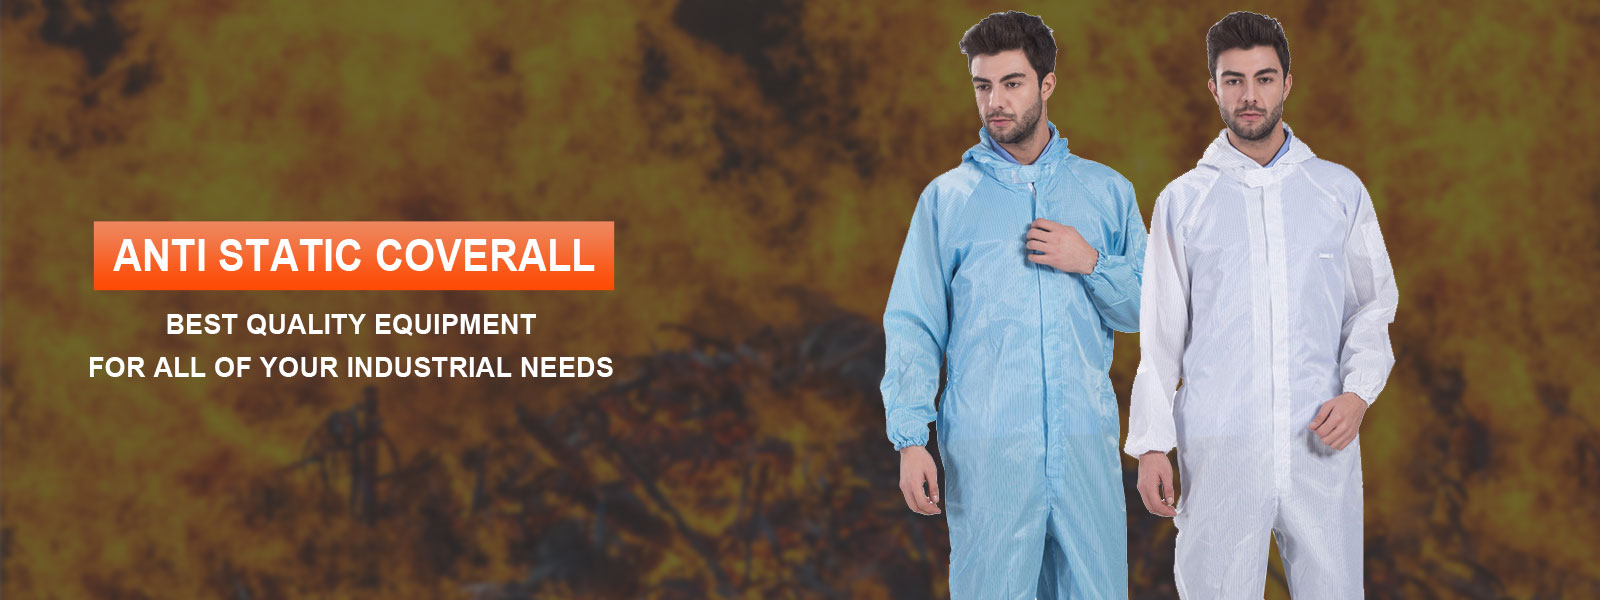 Anti Static Coverall Manufacturers in Jamaica